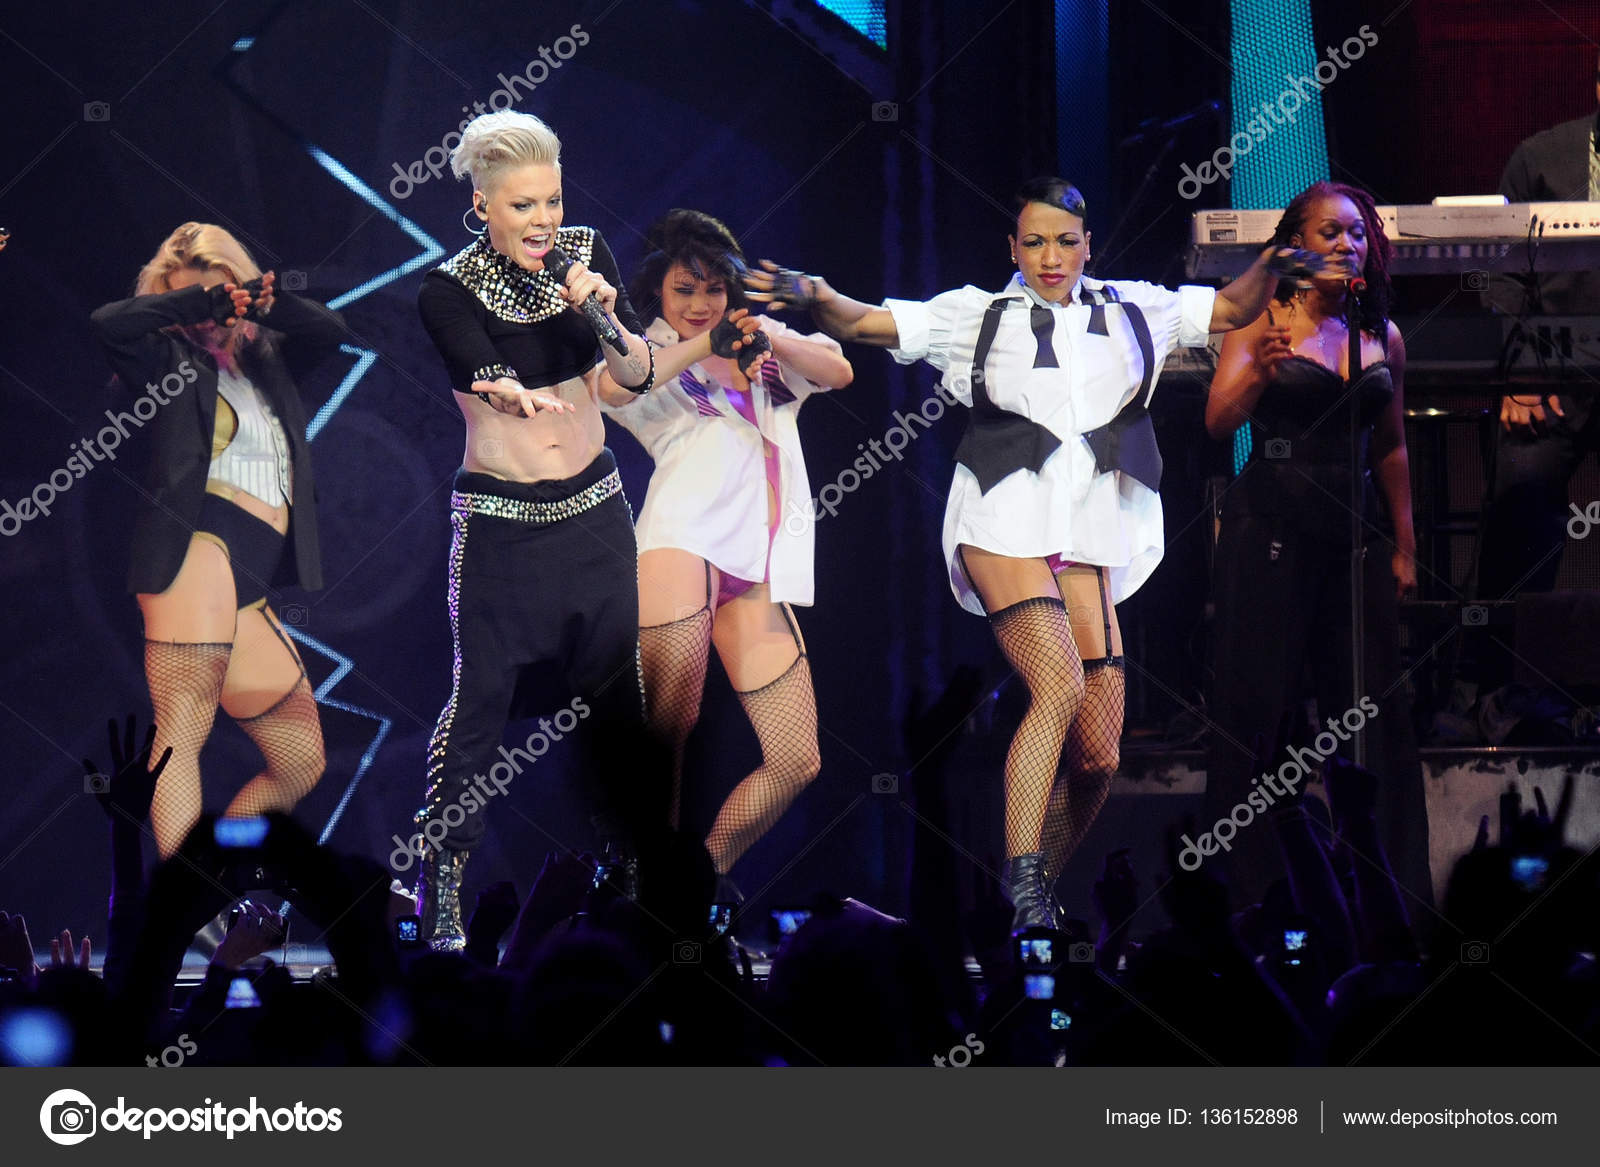 Popular american singer pink stock editorial photo yakub88 prague czech republic may 10 2013 american singer alecia beth moore alias pink second from left during her performance in prague czech republic voltagebd Image collections